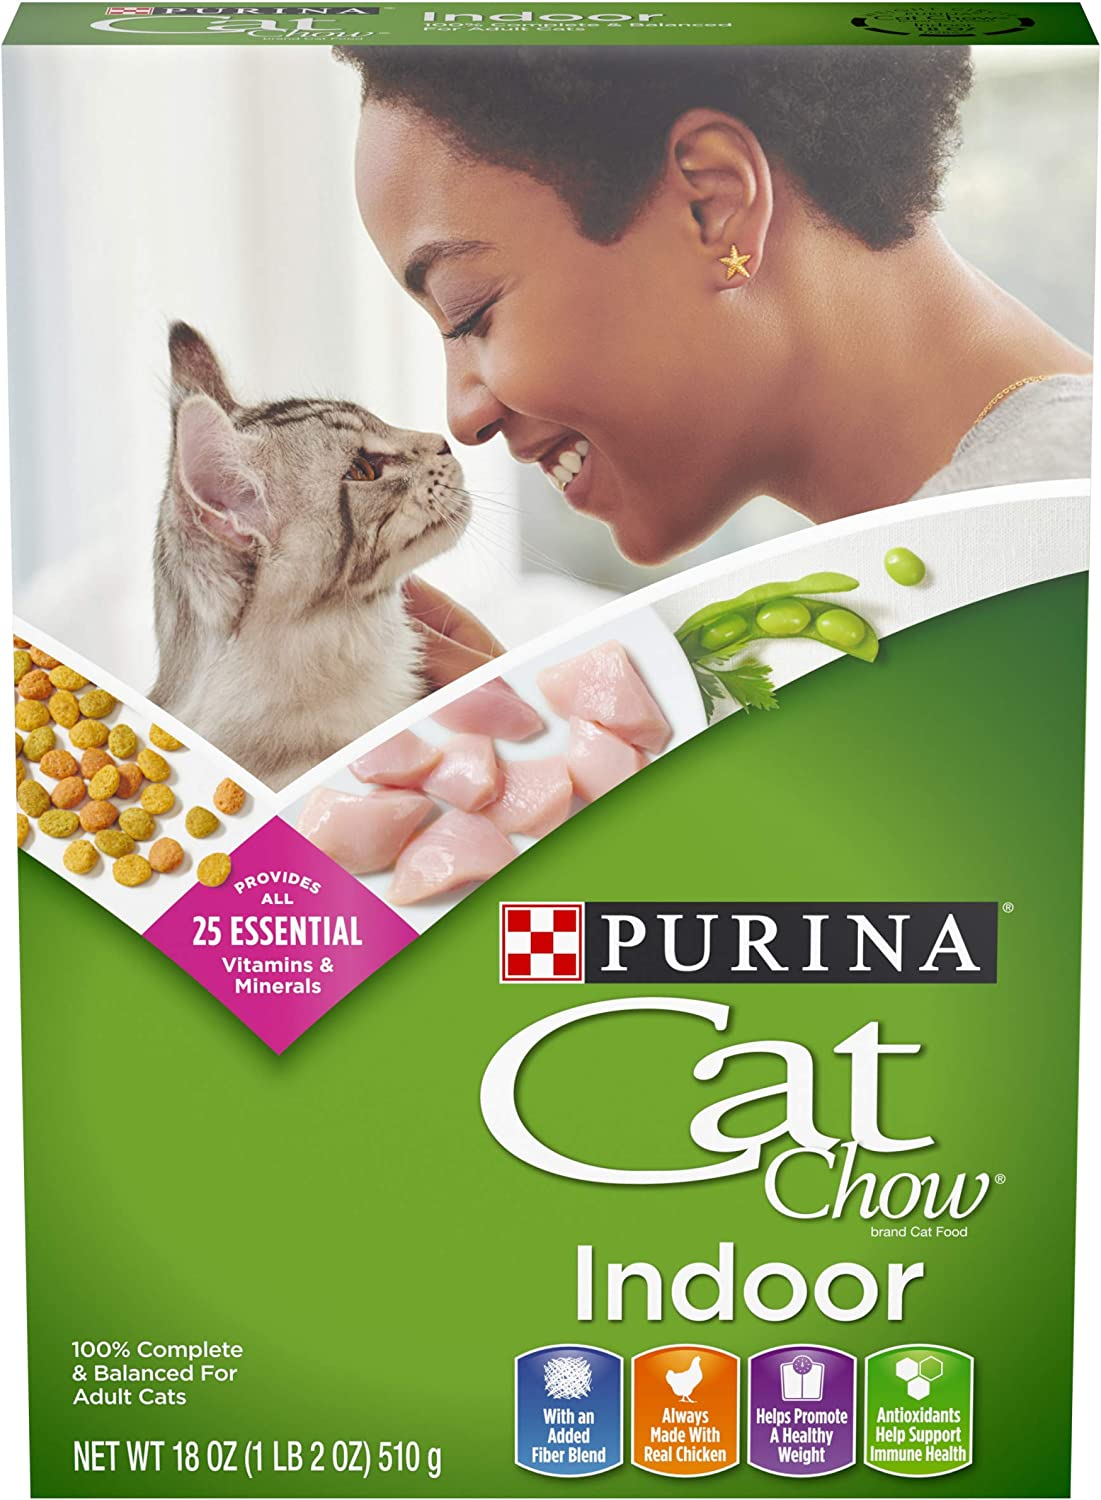 Purina Cat Chow Hairball, Healthy Weight, Indoor Dry Cat Food, Indoor - (12) 18 oz. Boxes